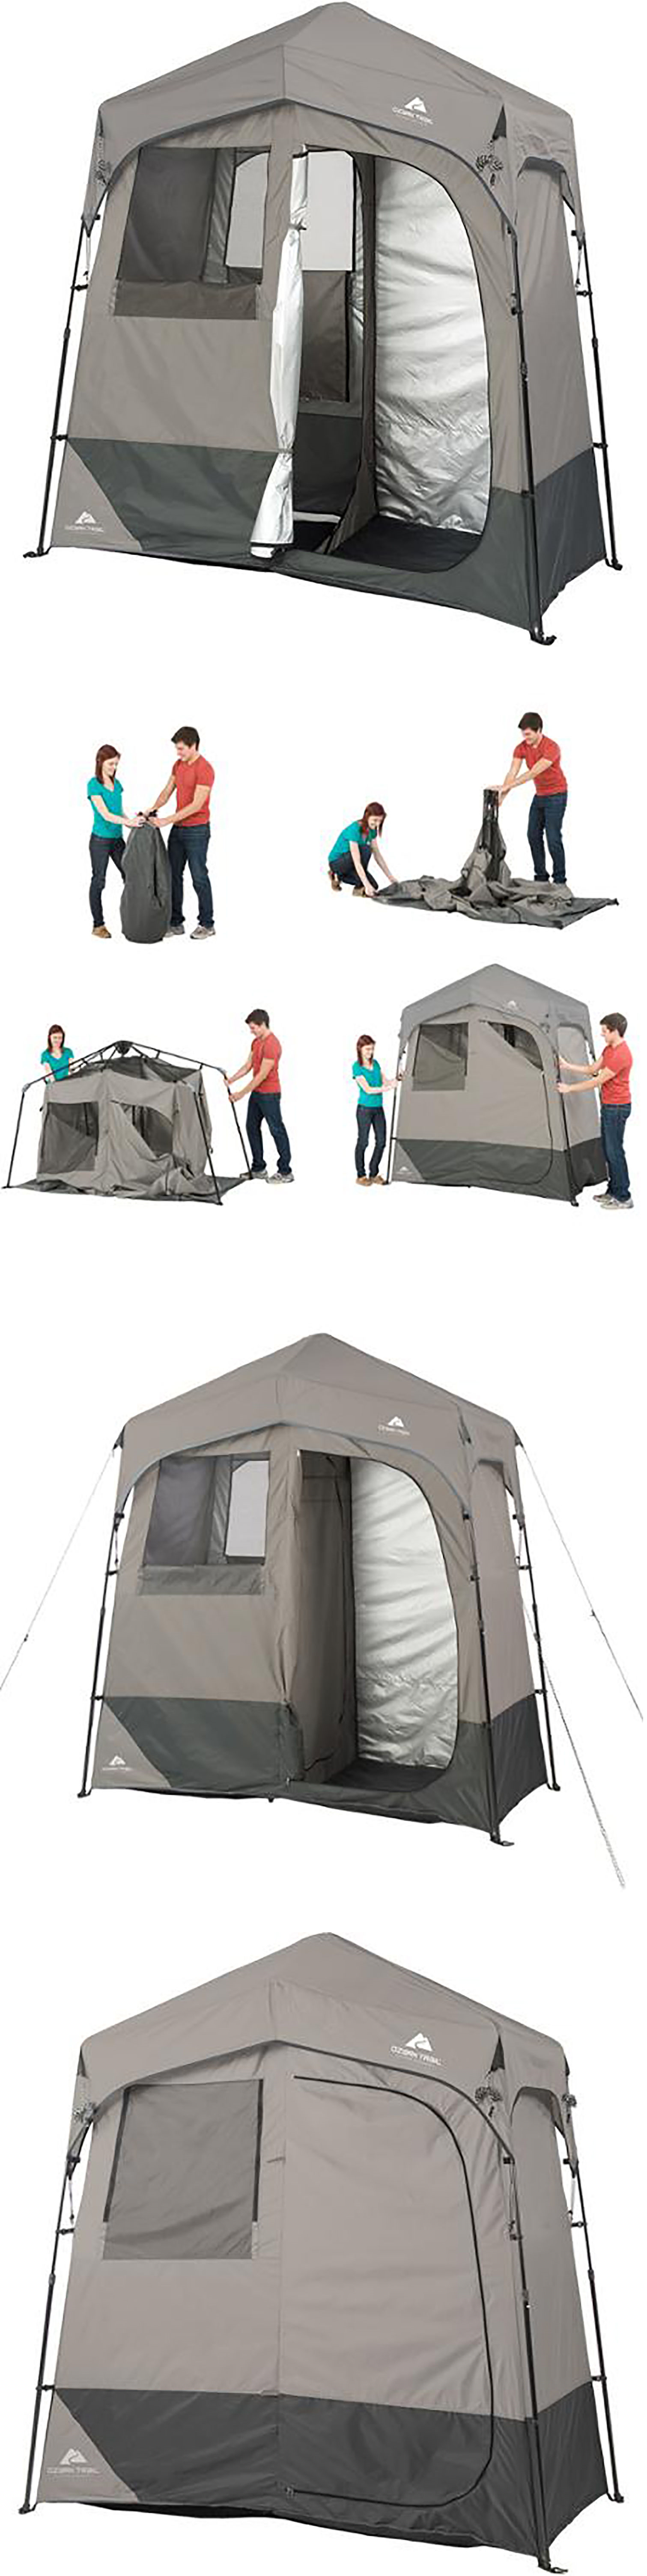 Portable Showers And Accessories 181396 Ozark Trail Instant Tent